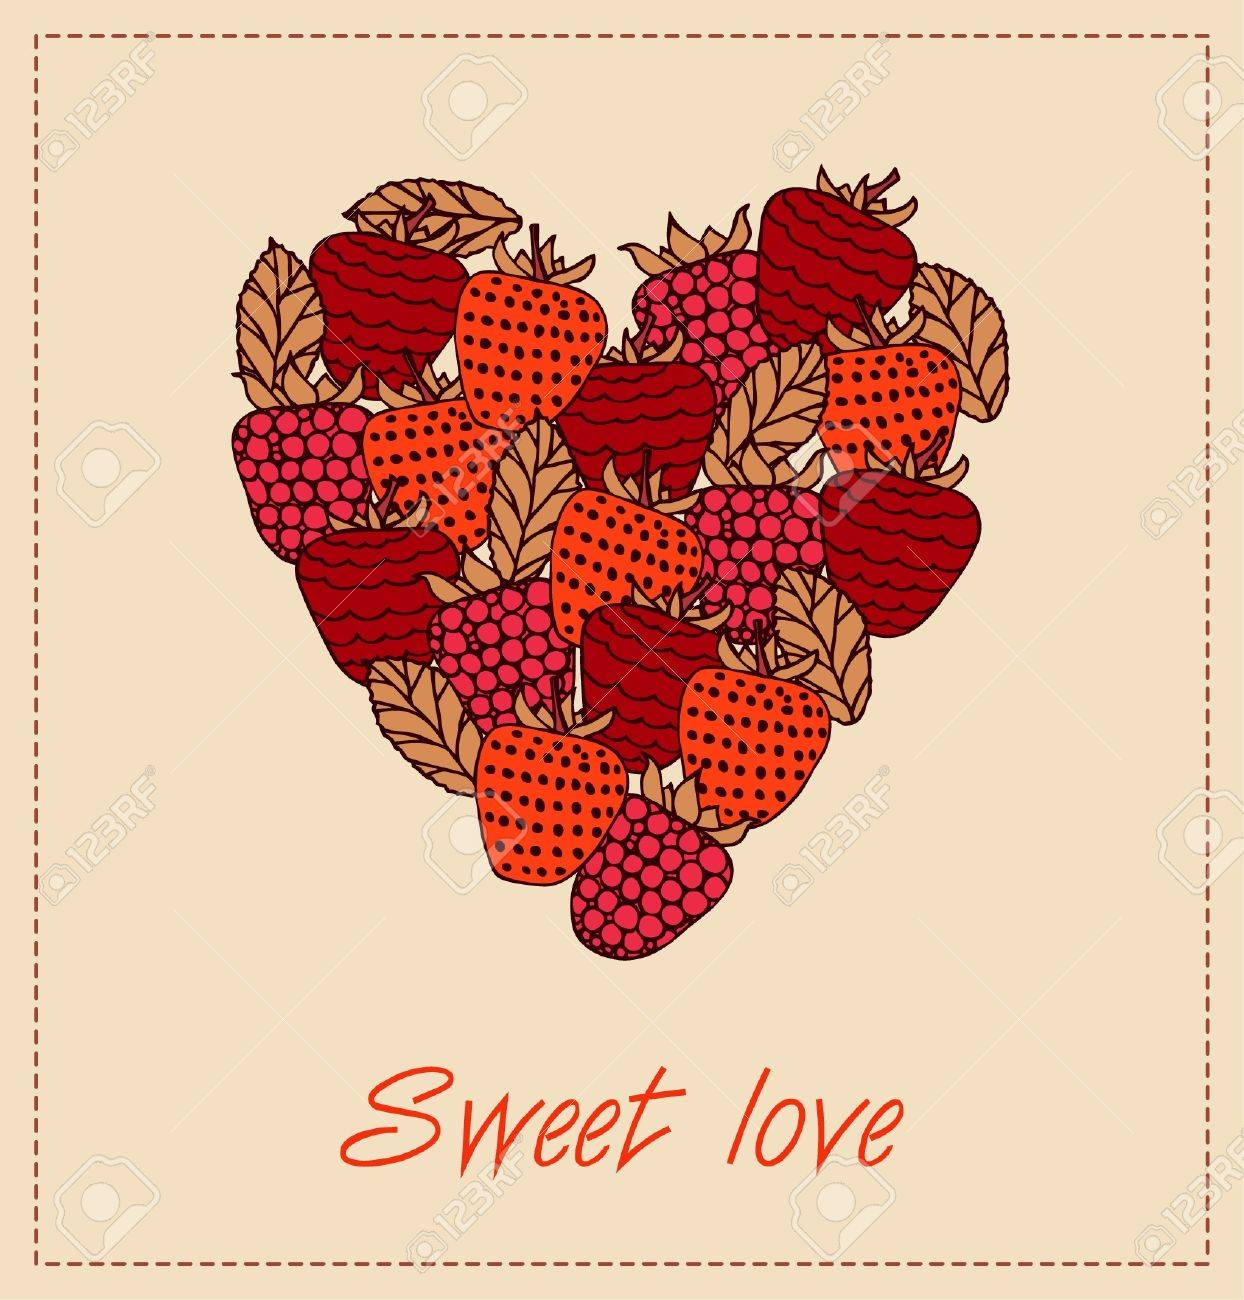 Sweet Love Template With Berries And Heart For Greeting Cards